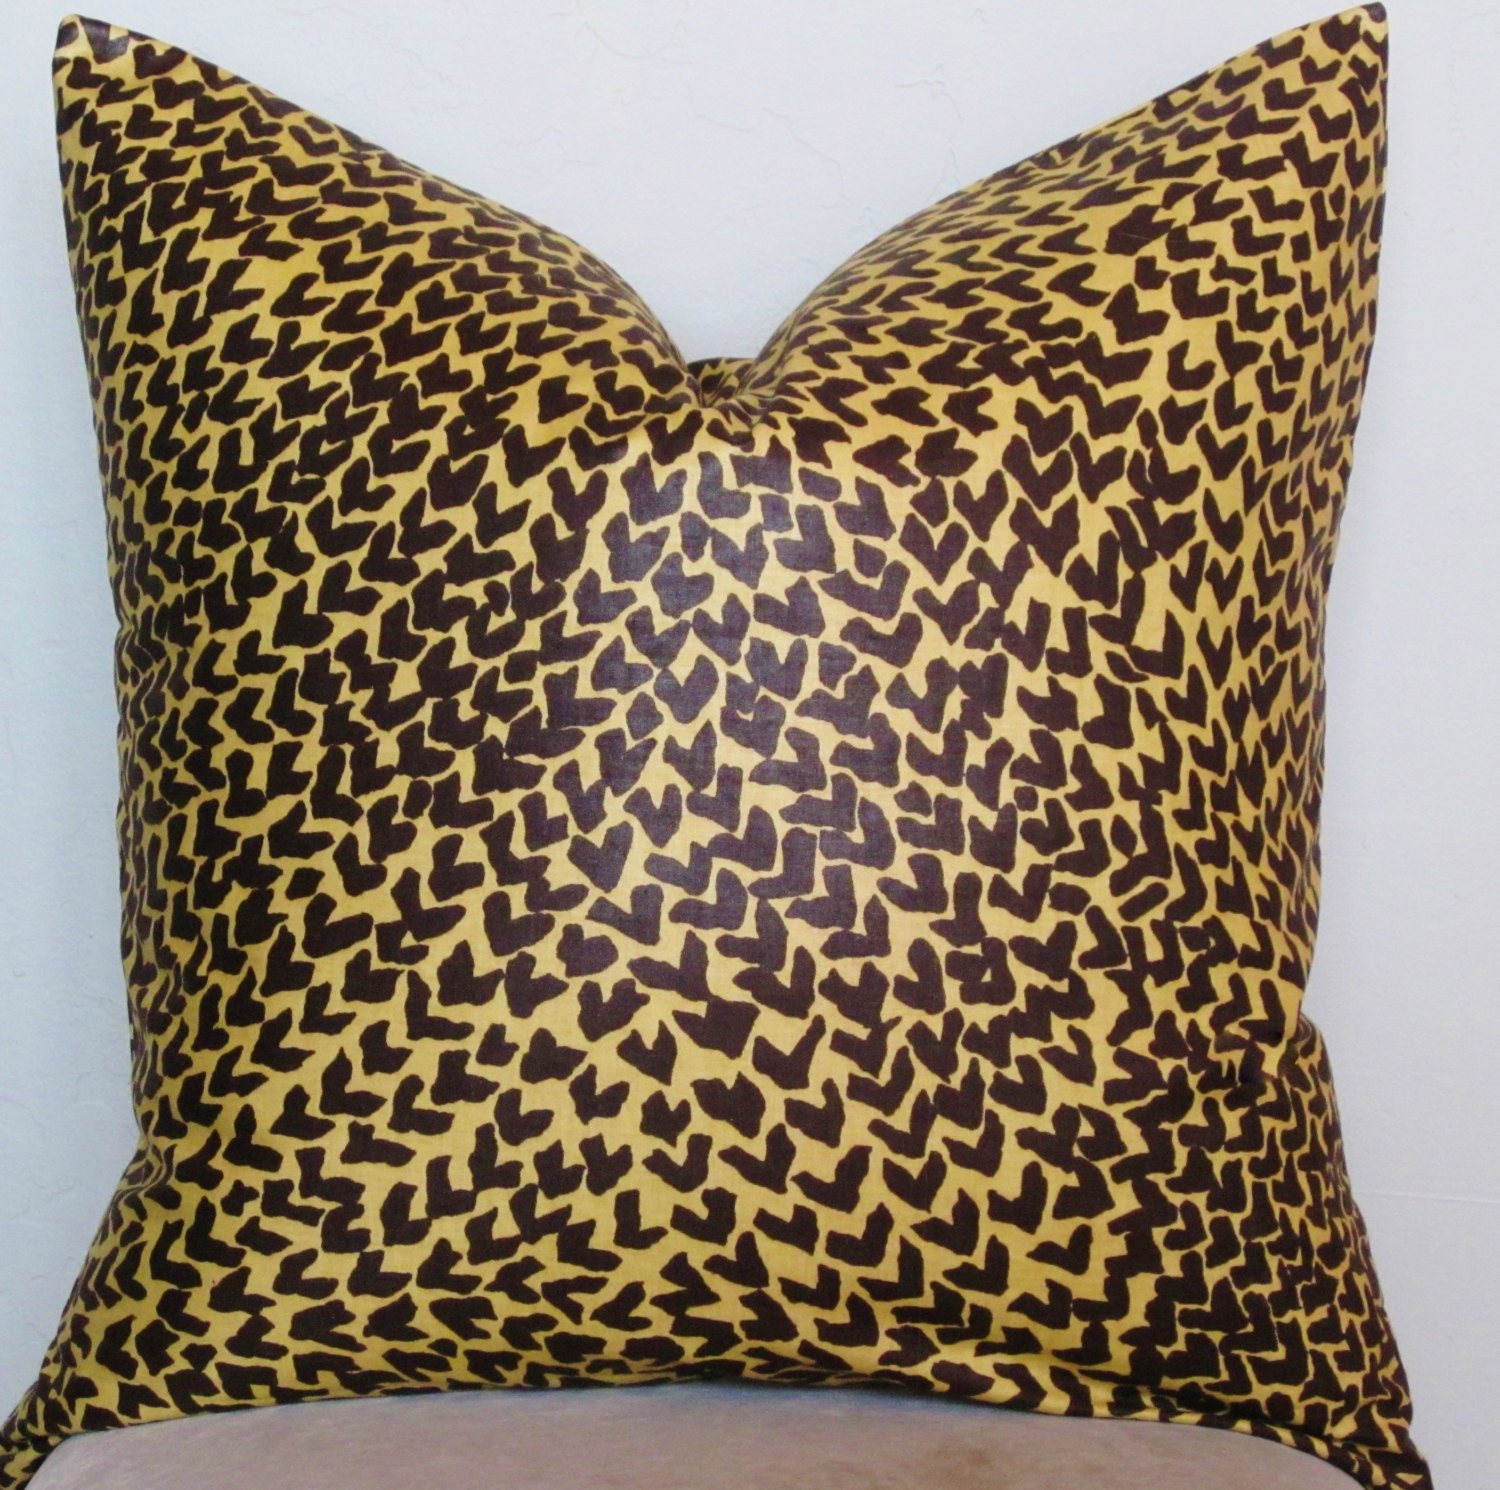 Animal Print Pillow Covers : Pillow Cover-Animal Print Brown and Gold by SewWhatAlley on Etsy